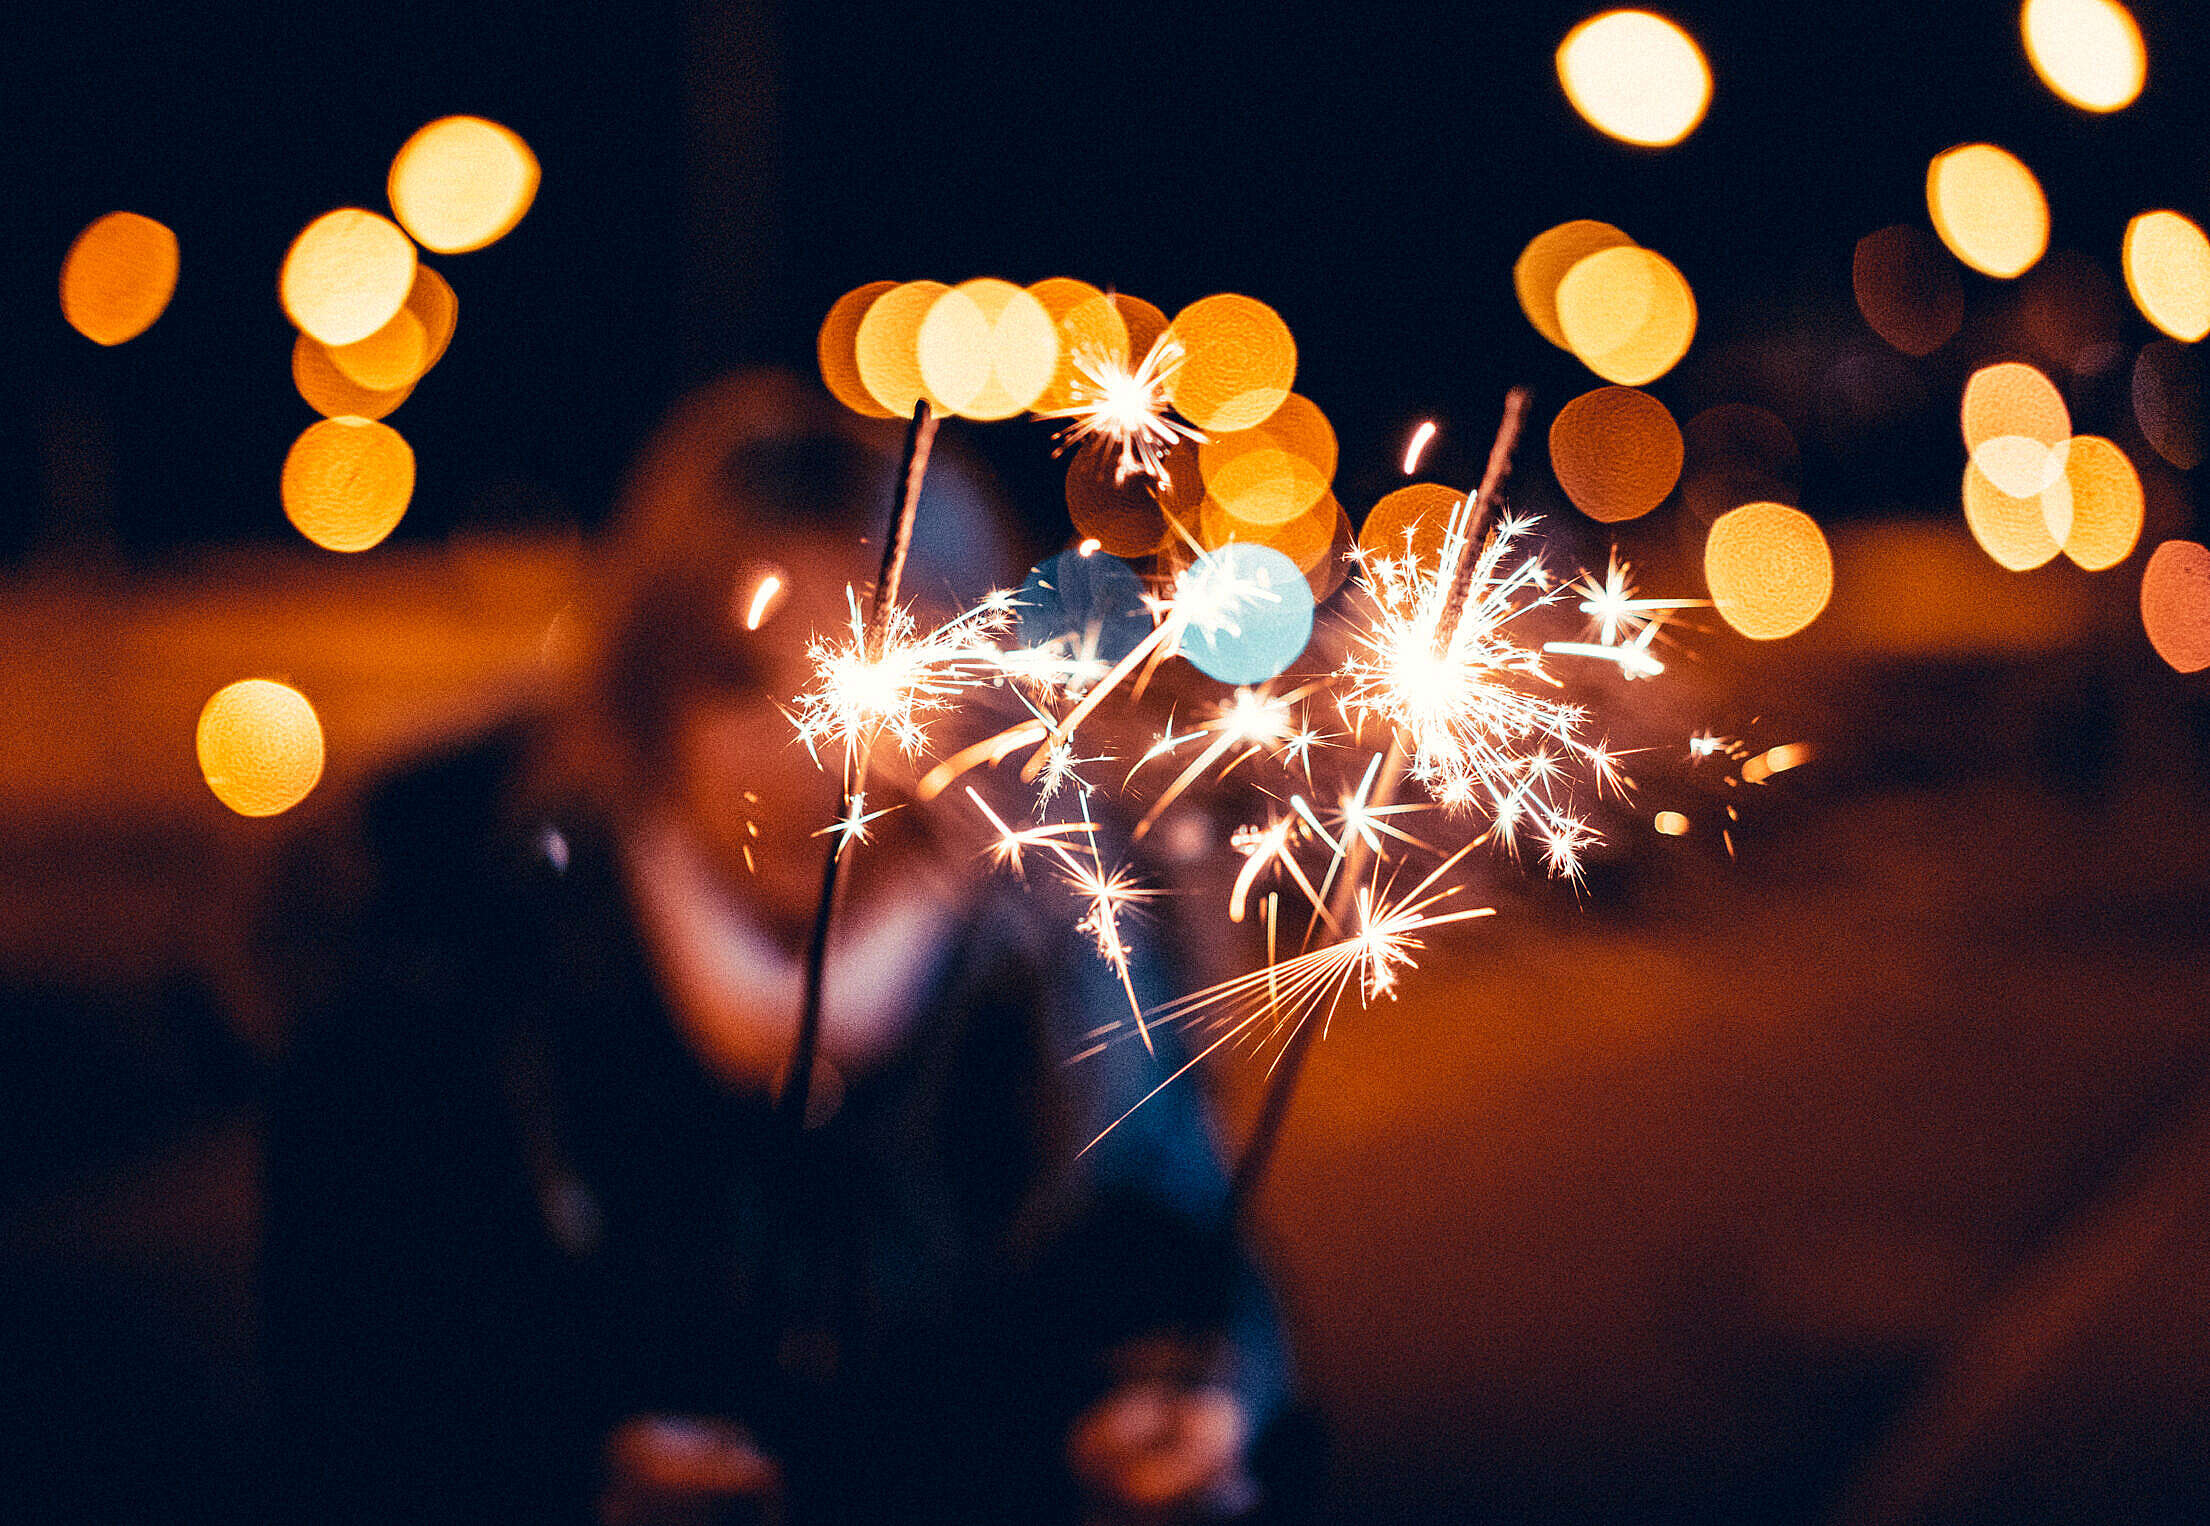 Woman Holding Sparklers in Hands Free Stock Photo